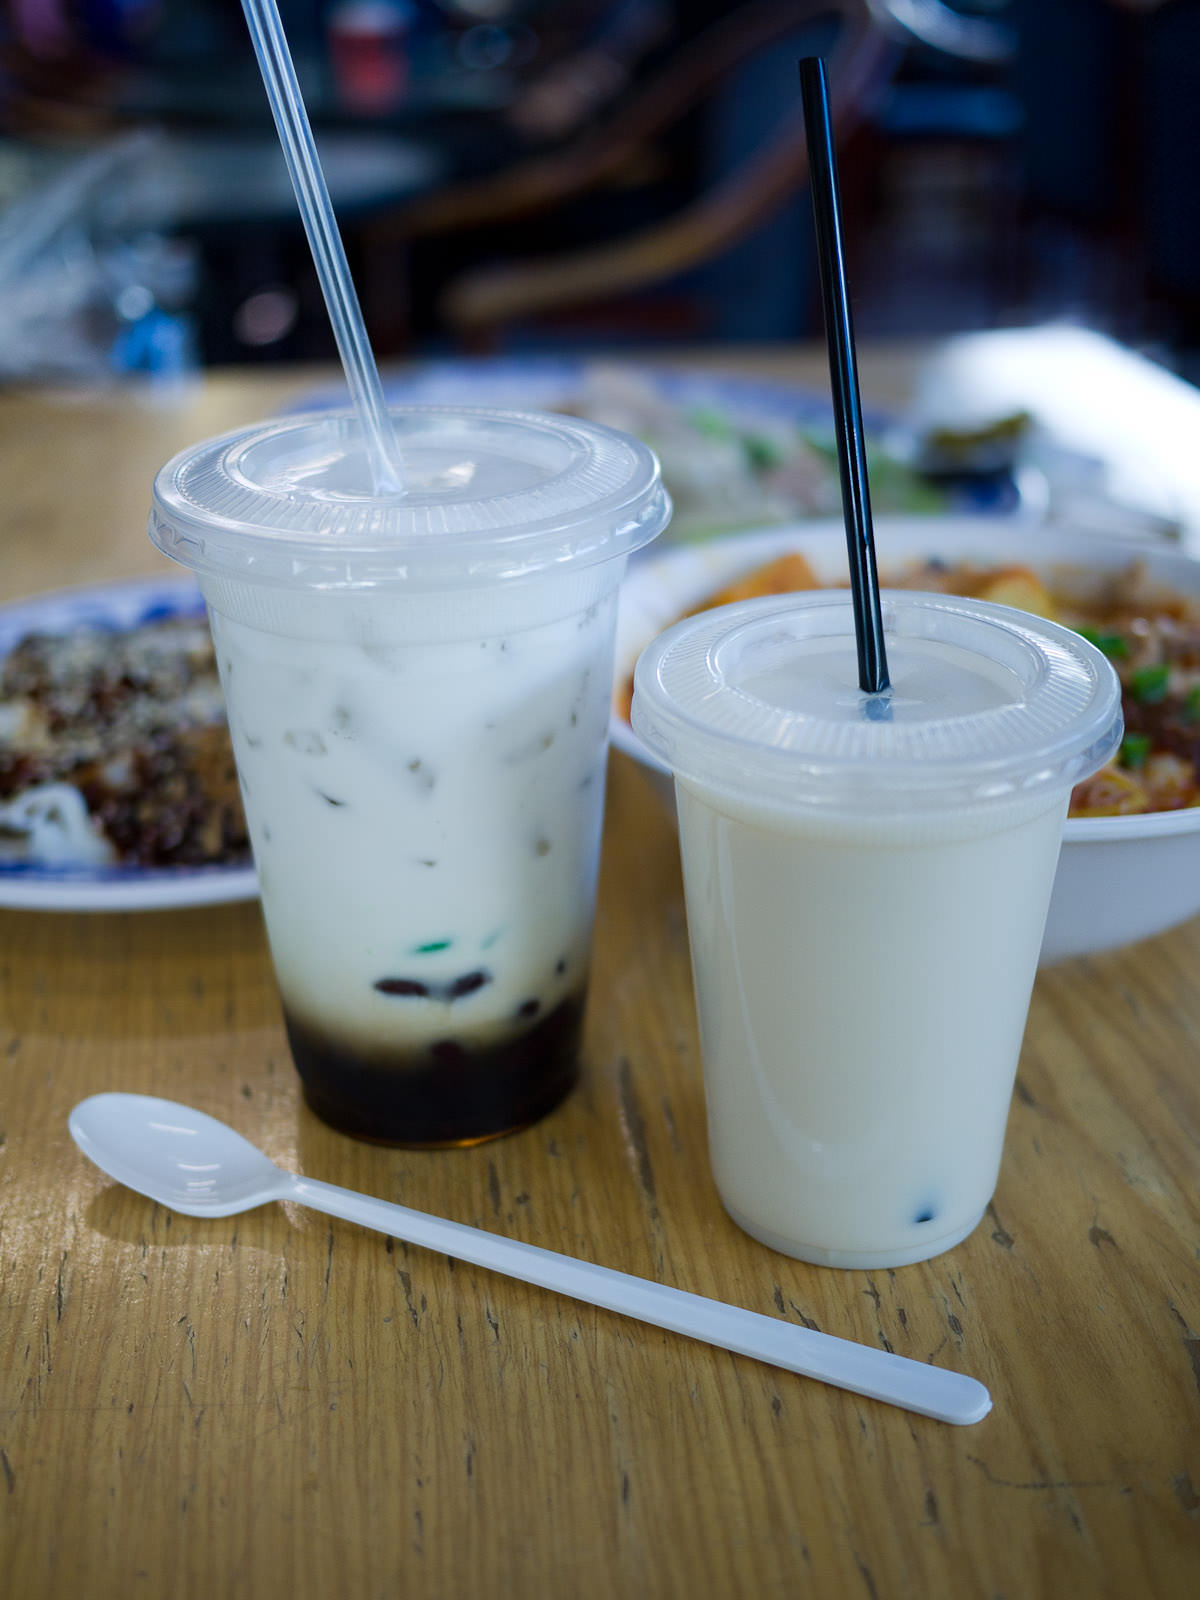 Cendol and soya bean milk